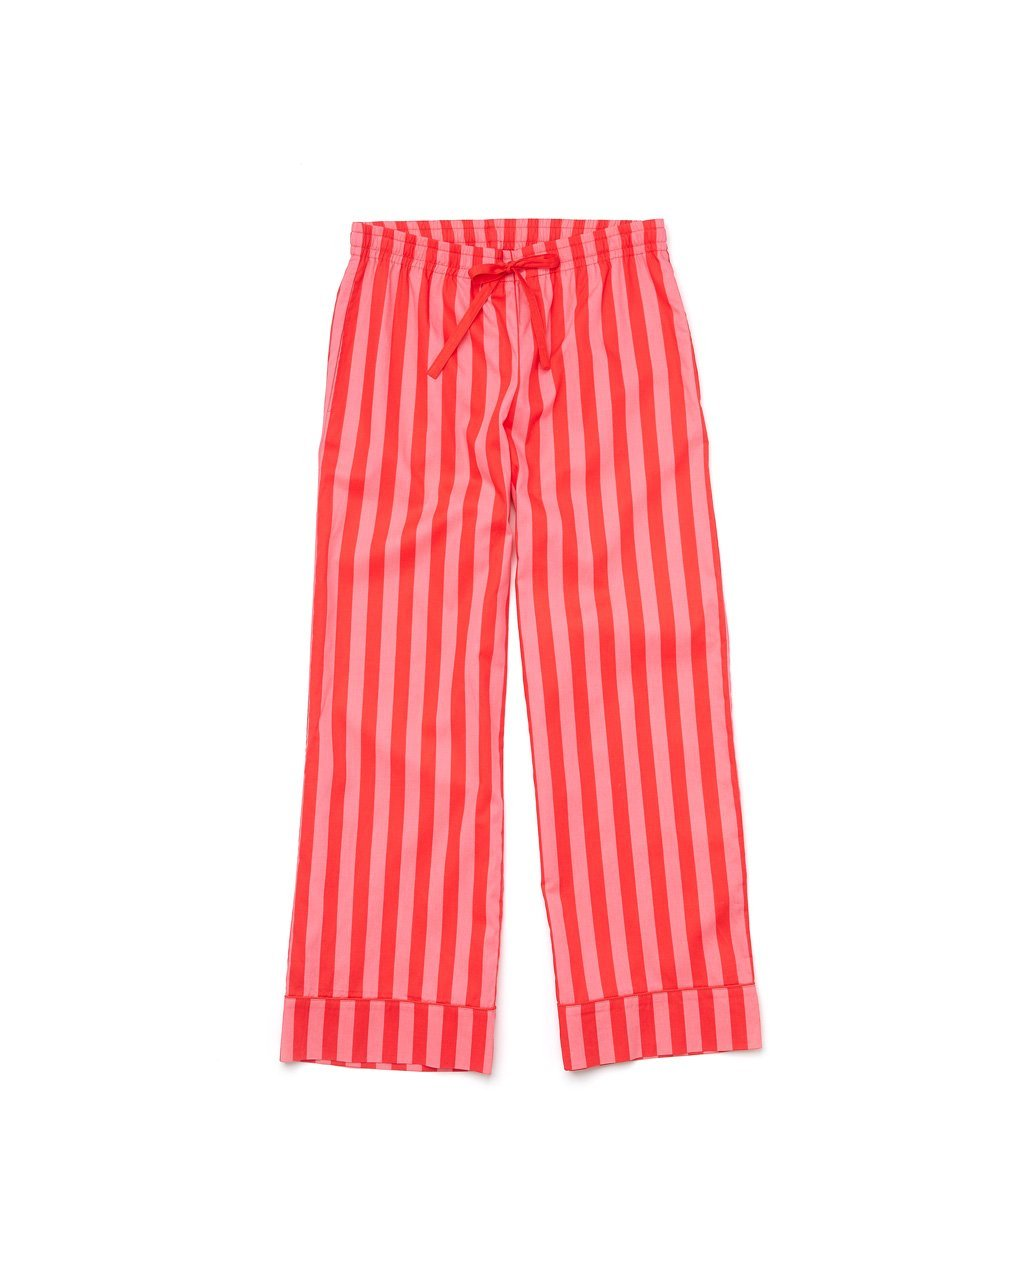 Cotton red and pink vertical stripe leisure pants with a draw string waist